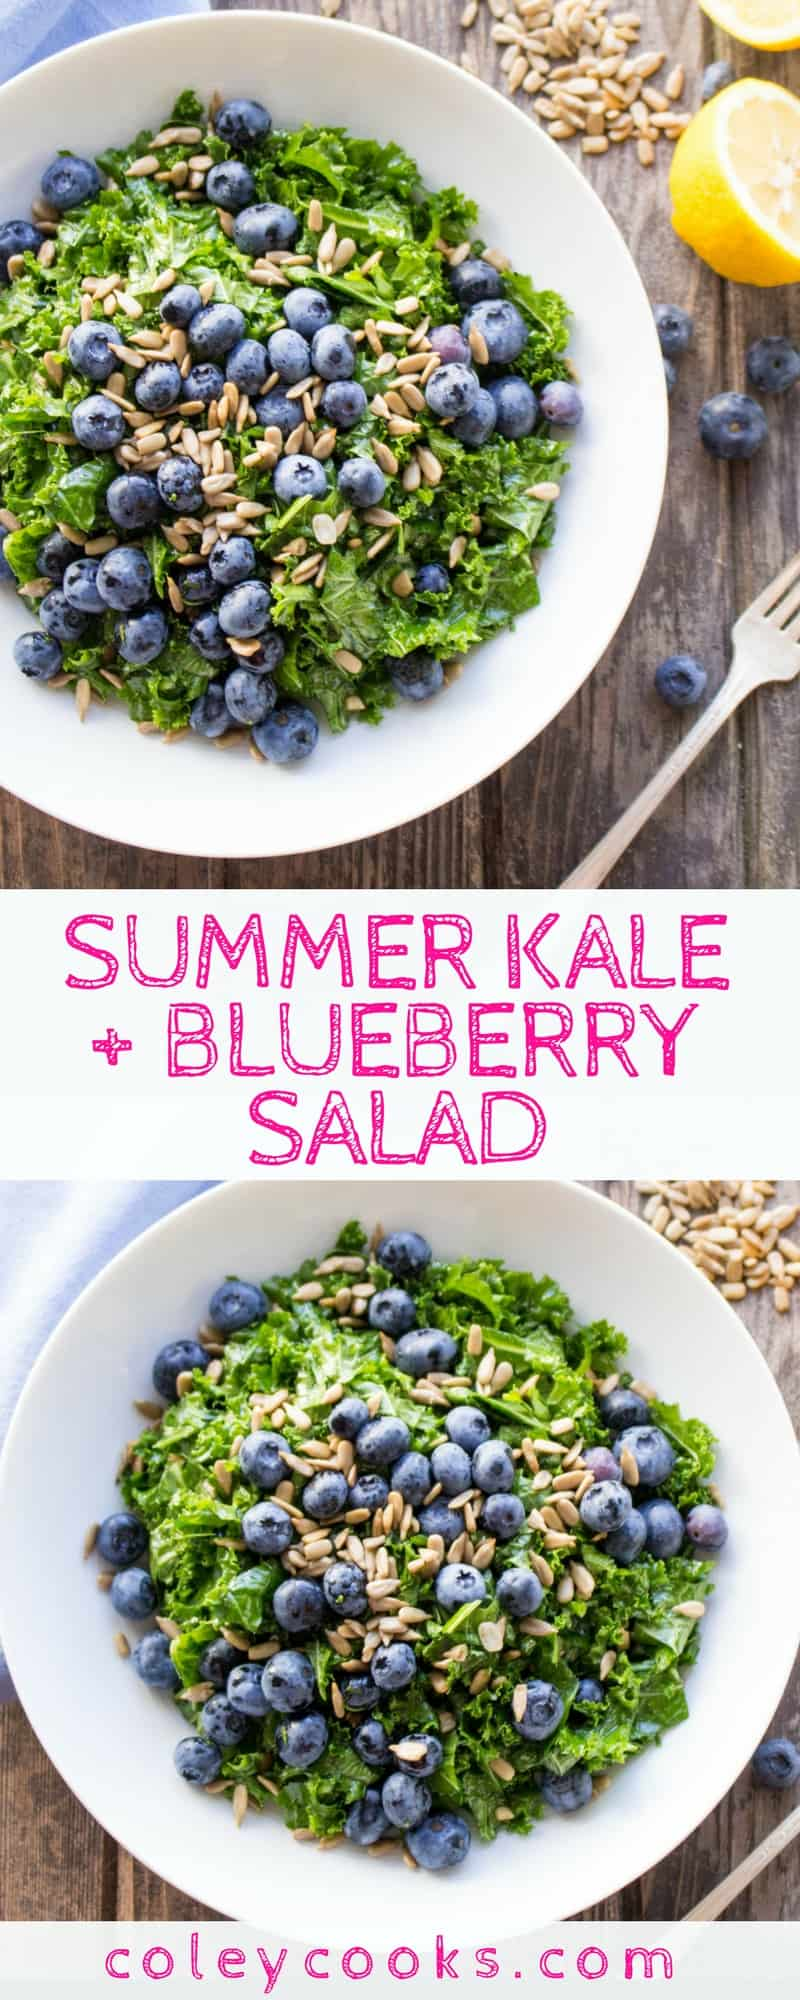 SUMMER KALE + BLUEBERRY SALAD | Easiest ever summer salad recipe with a simple honey lemon vinaigrette, crunchy sunflower seeds, sweet blueberries and massaged kale! #glutenfree #vegan #plantbased #paleo | ColeyCooks.com